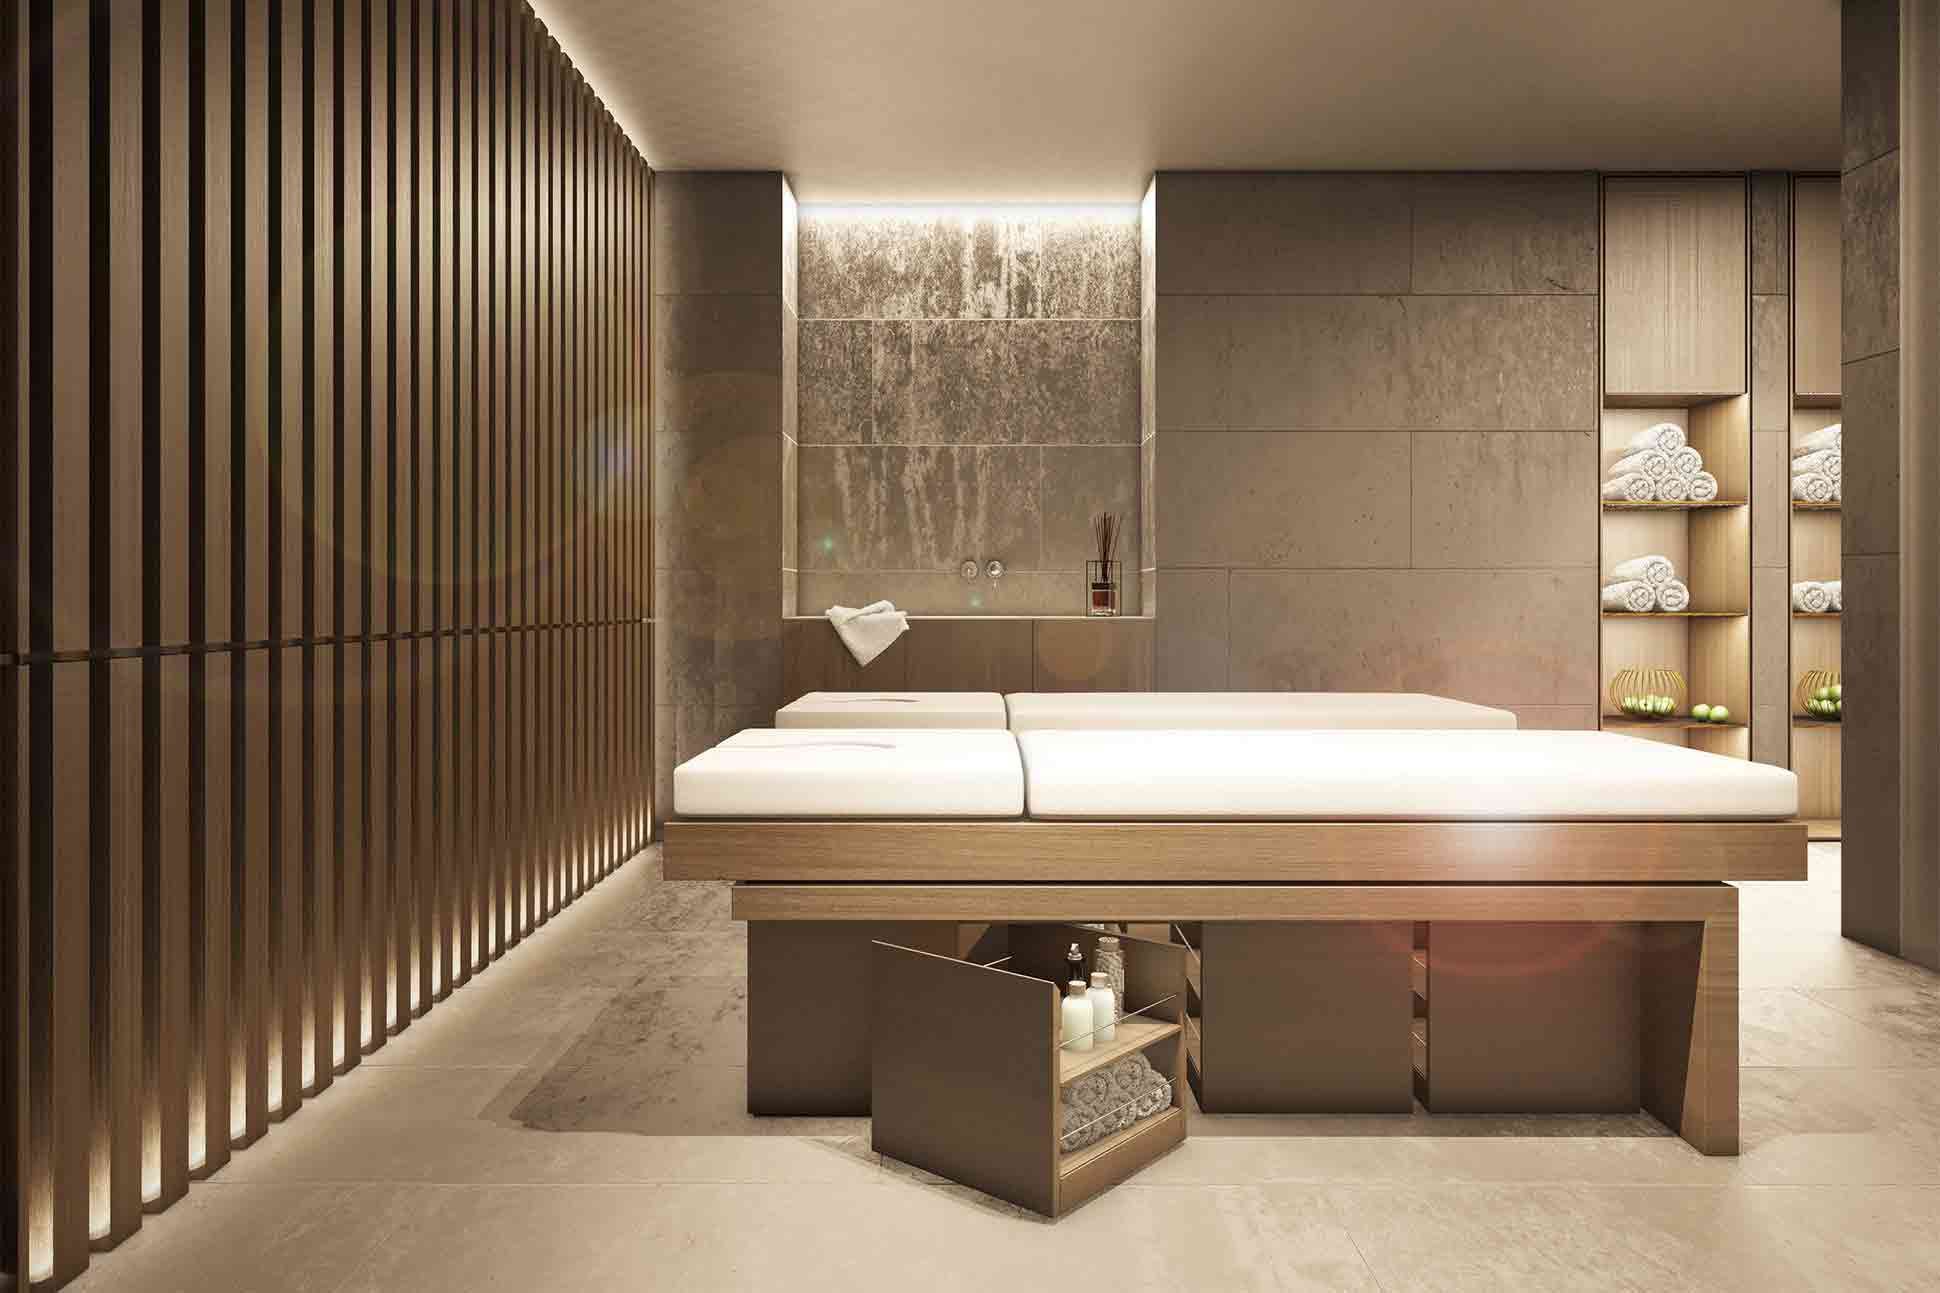 The spa at Le Massif Courmayeur, Italy